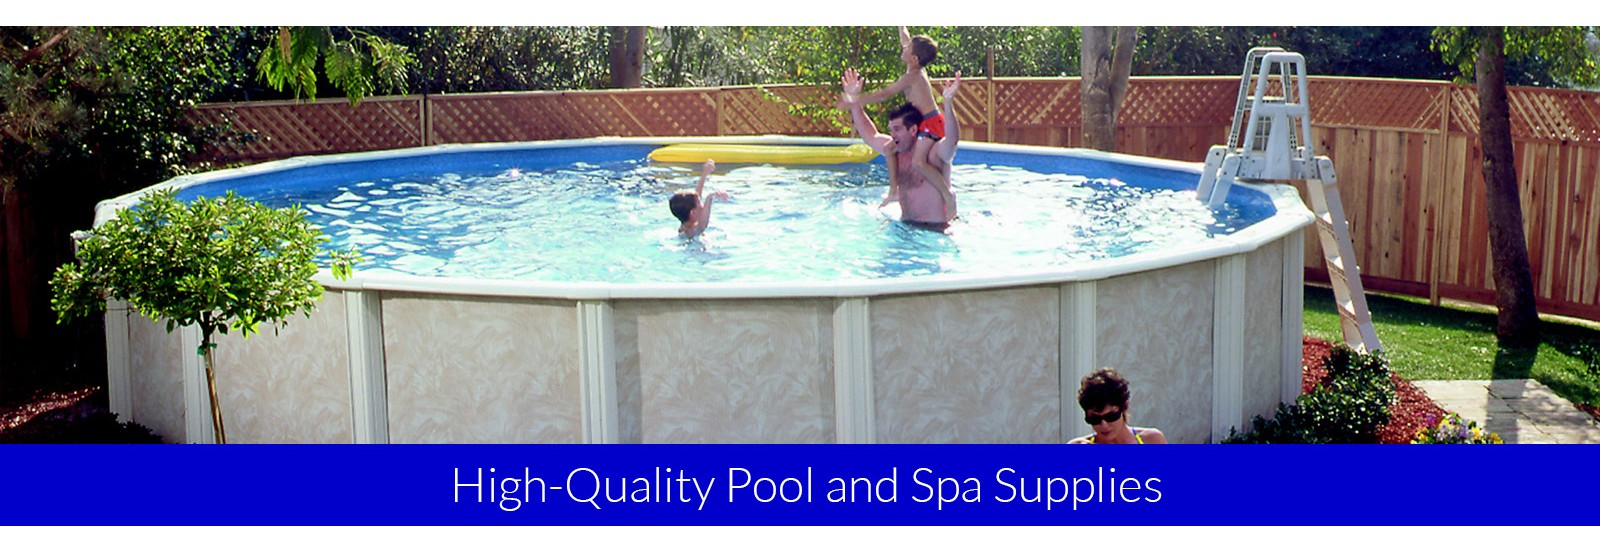 Pool and Spa Supplies in Springfield, MO | Midwest Pool & Spa